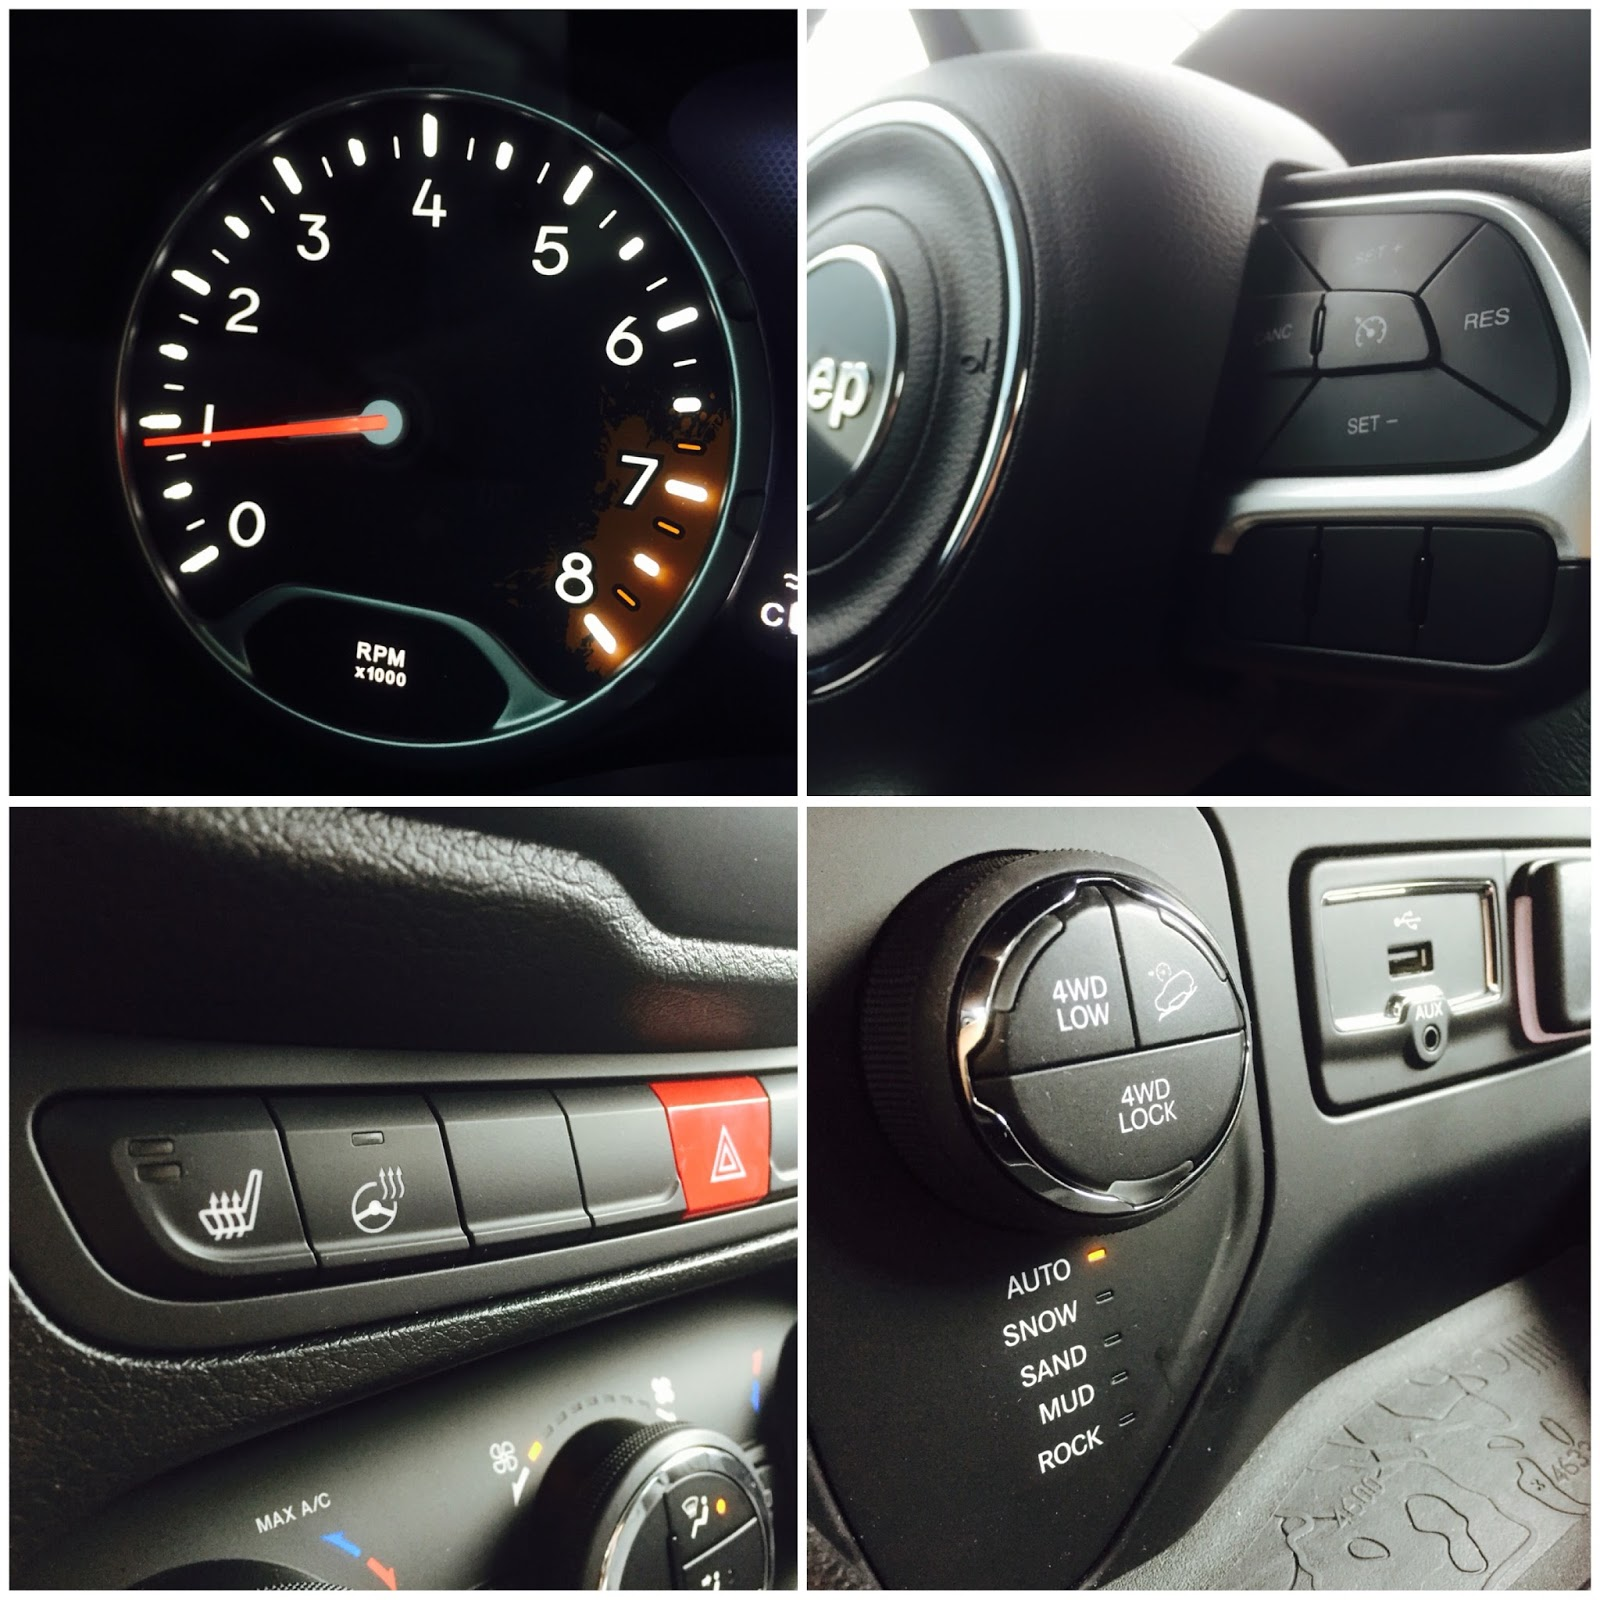 Interior Jeep Renegade Indonesia: 2015 Jeep Renegade Trailhawk Review